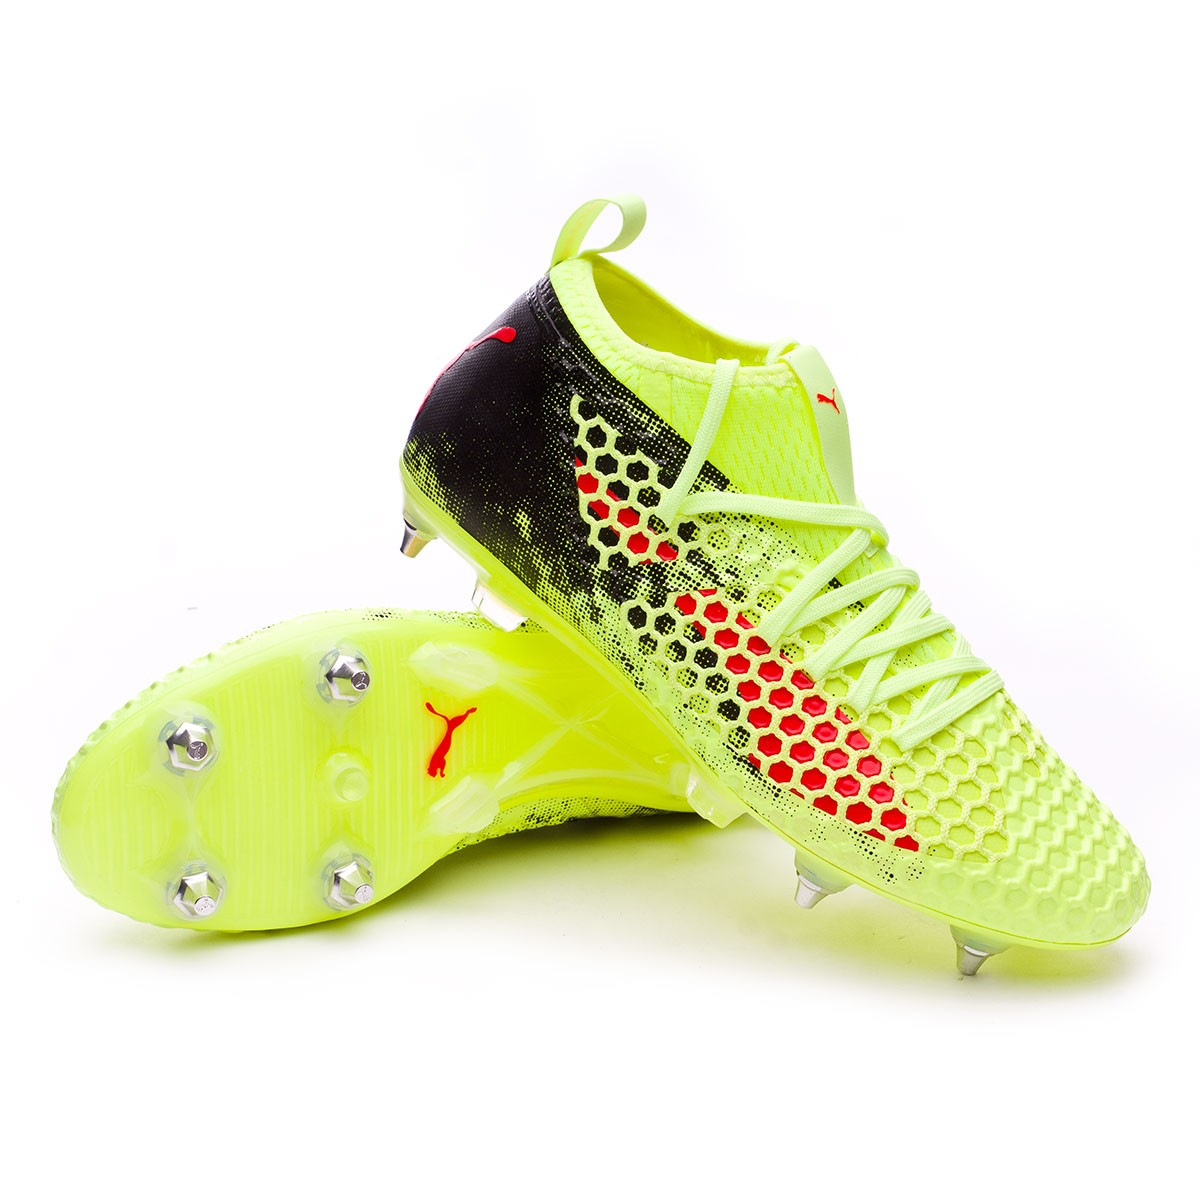 2cf896deb68 Puma Future 18.2 Netfit SG Boot. Fizzy Yellow-Red Blast-Puma Black ...